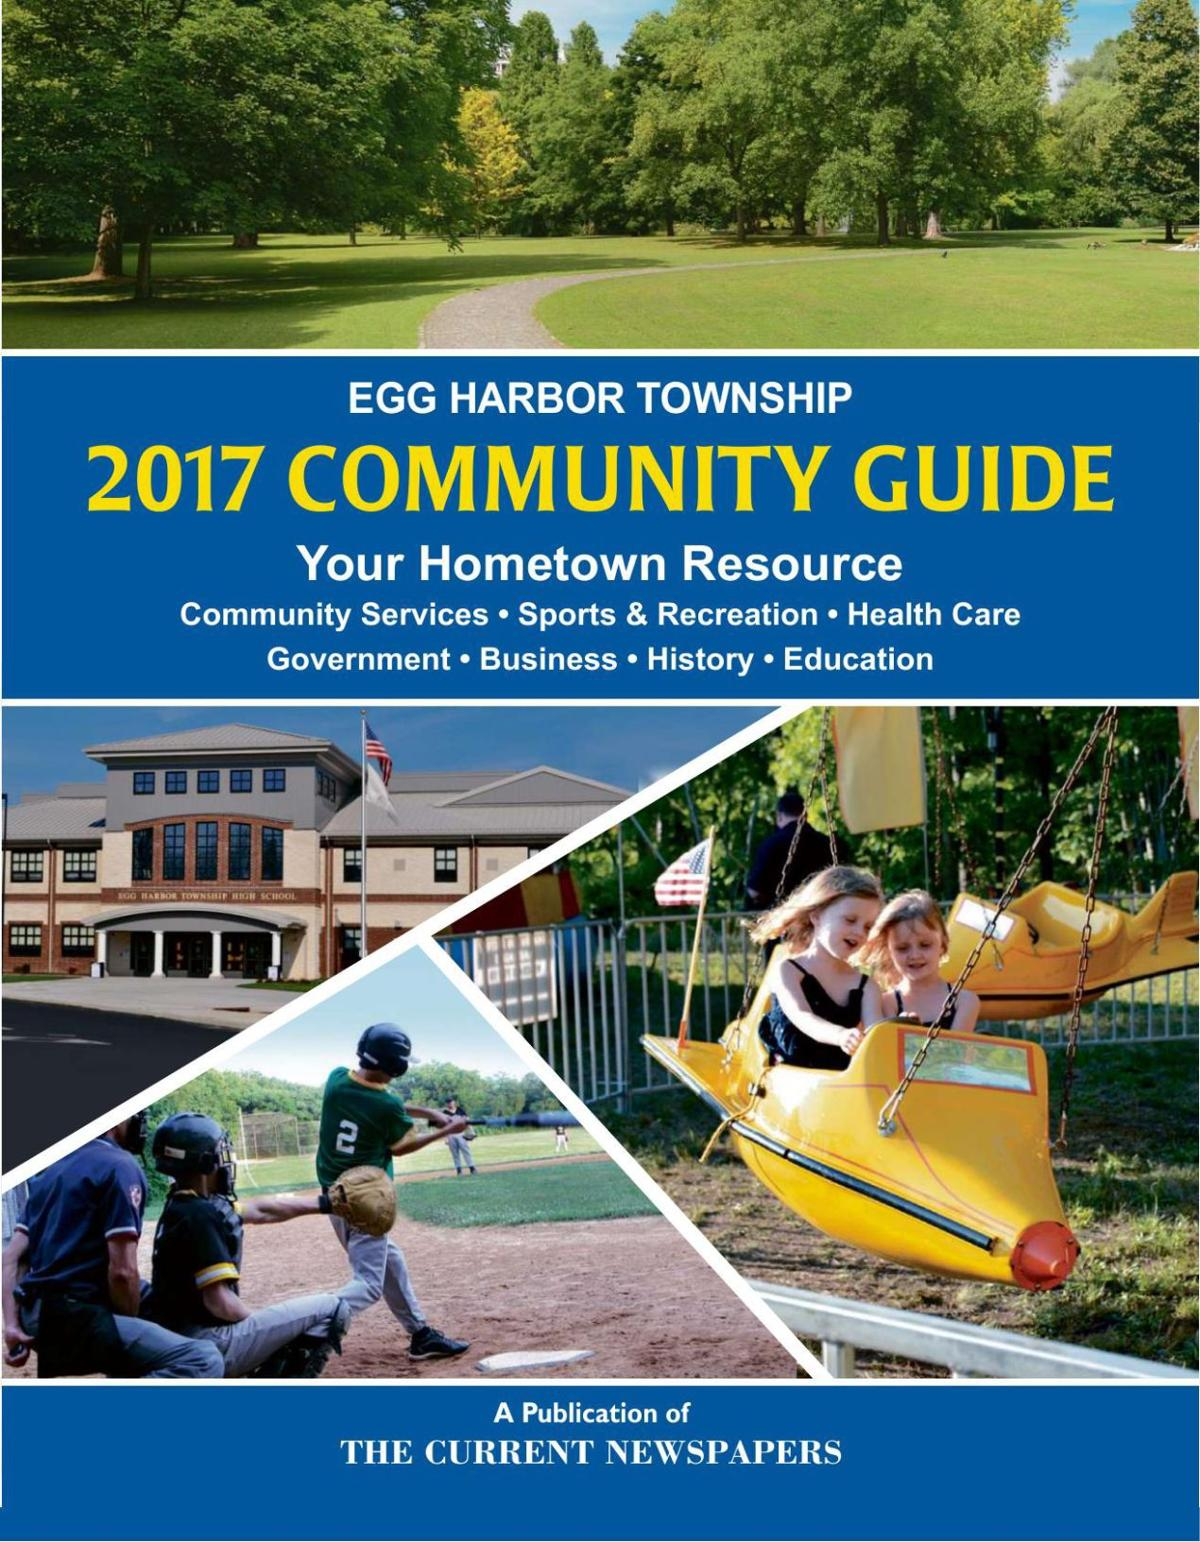 Egg Harbor Township Community Guide 2017